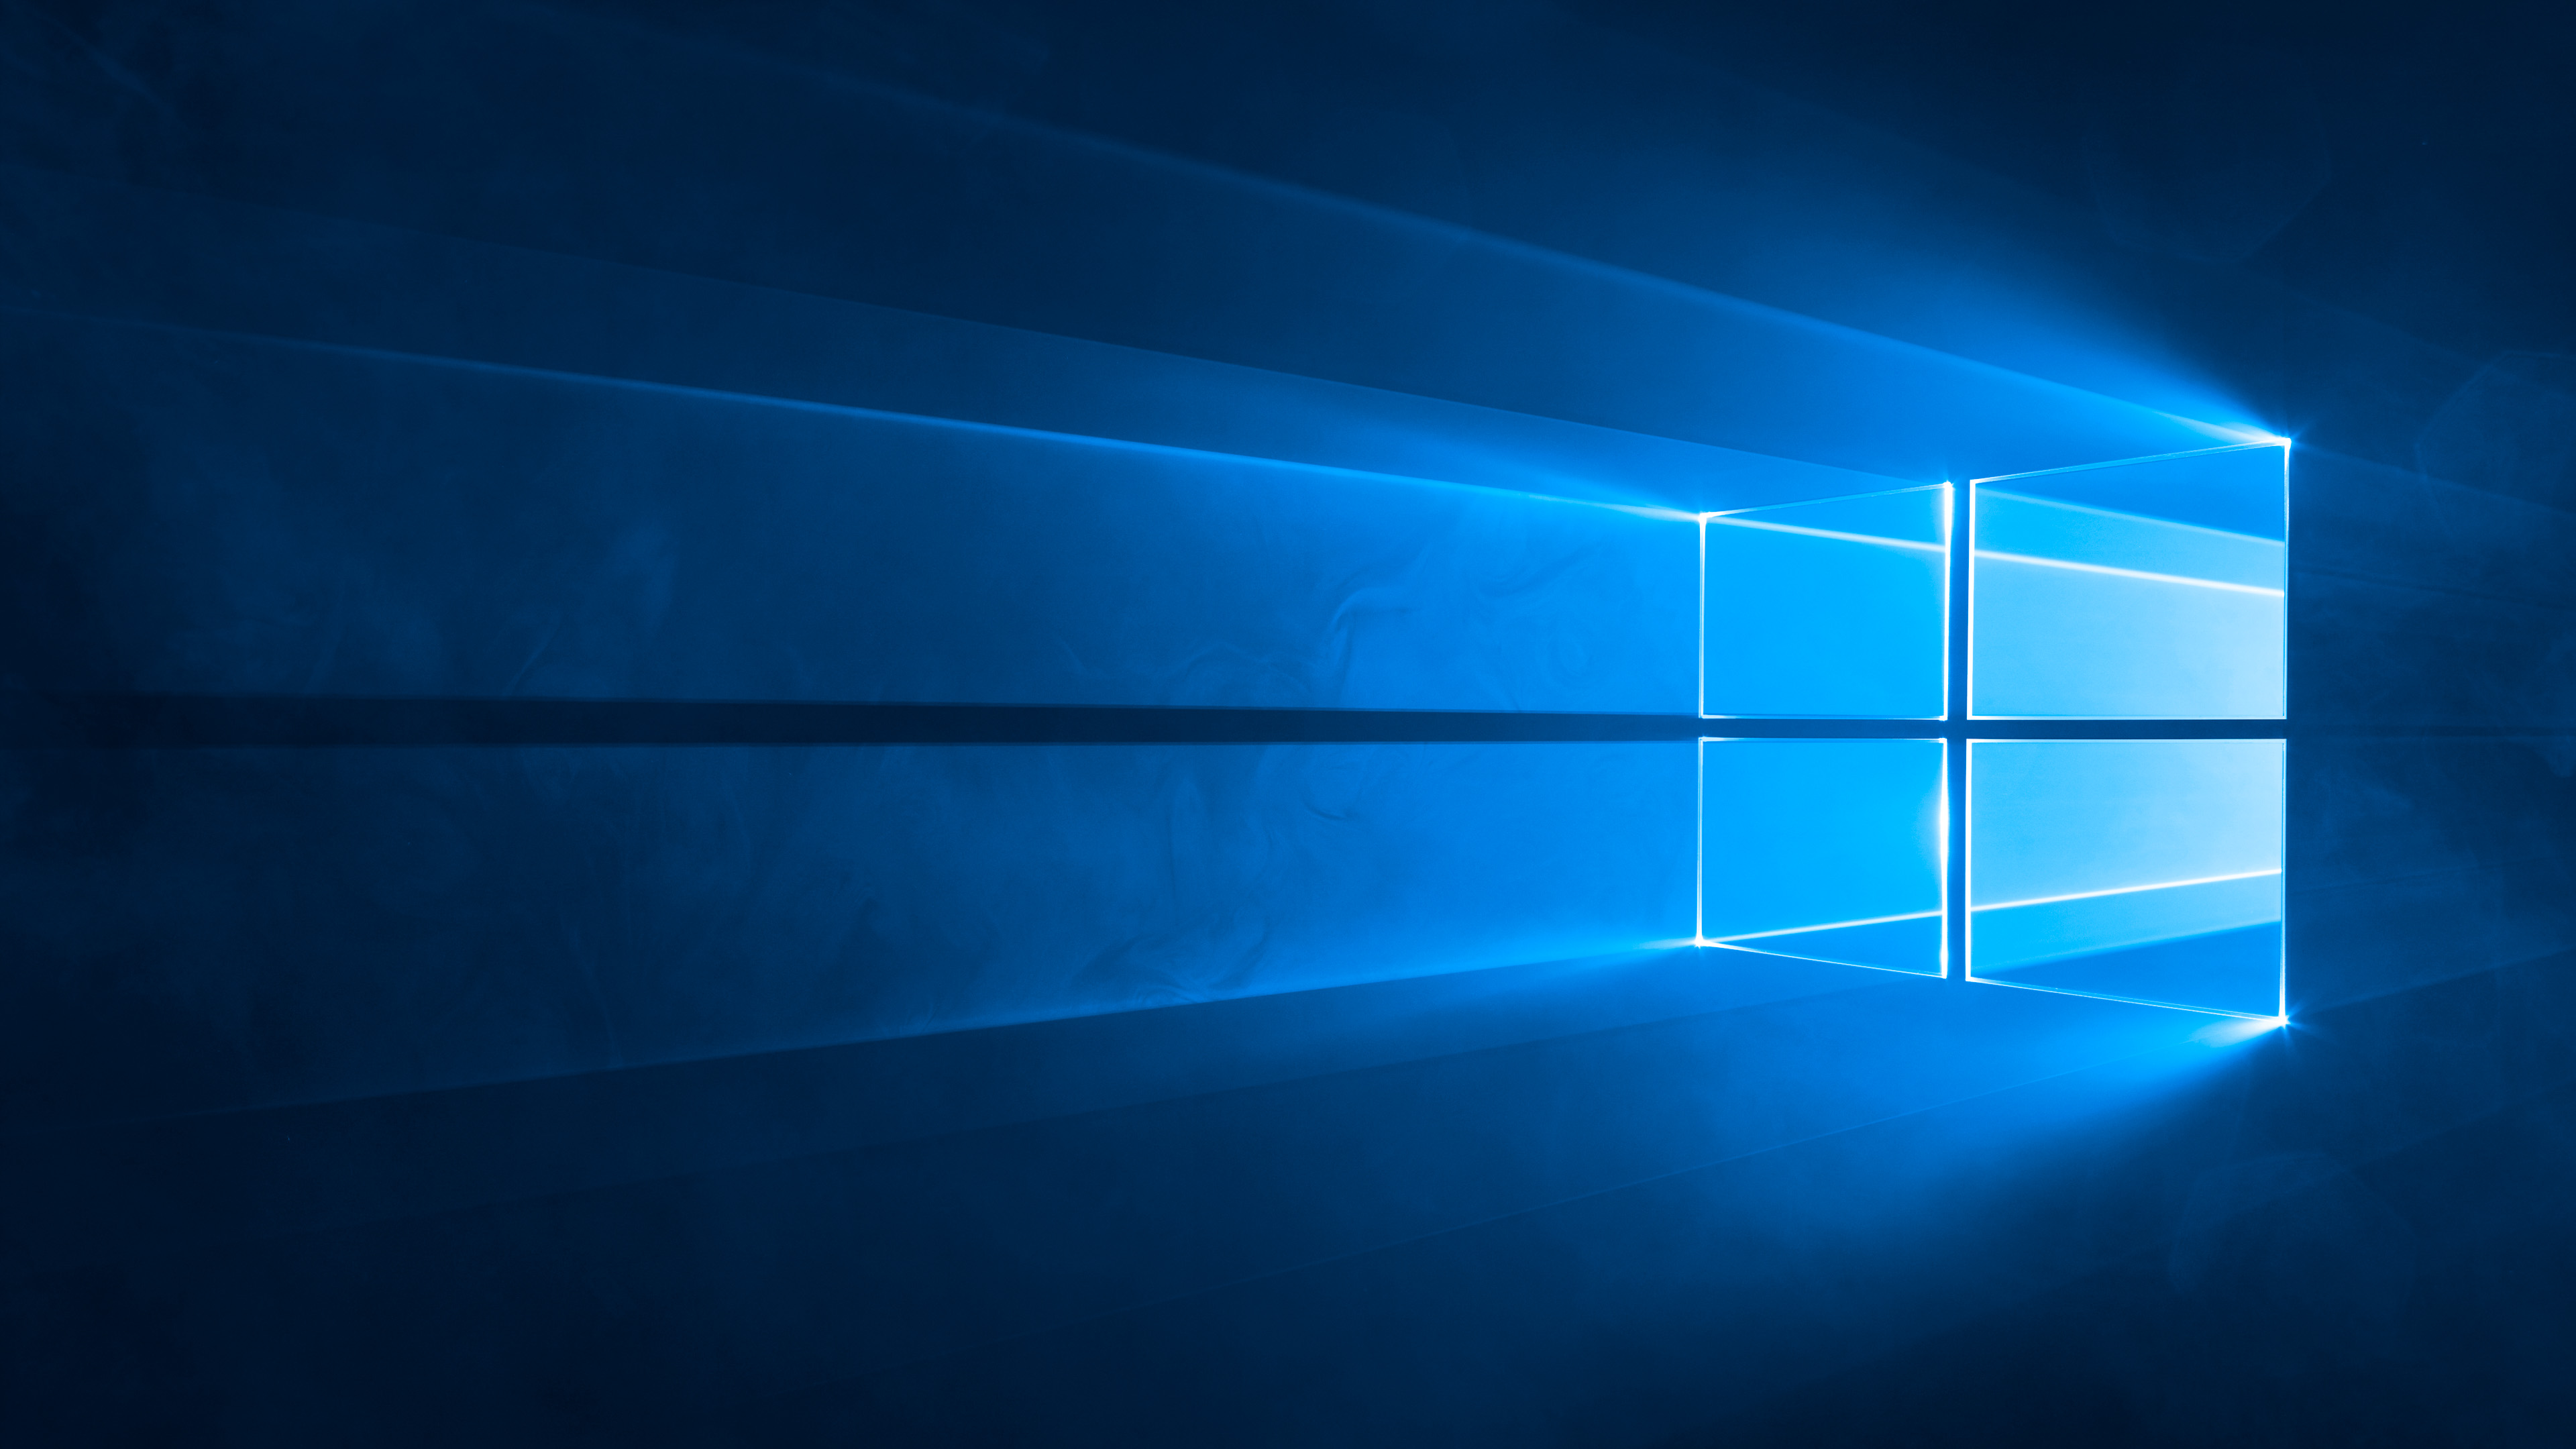 Windows 10 4K Wallpapers   Ultra HD Top 15 AxeeTech 3840x2160